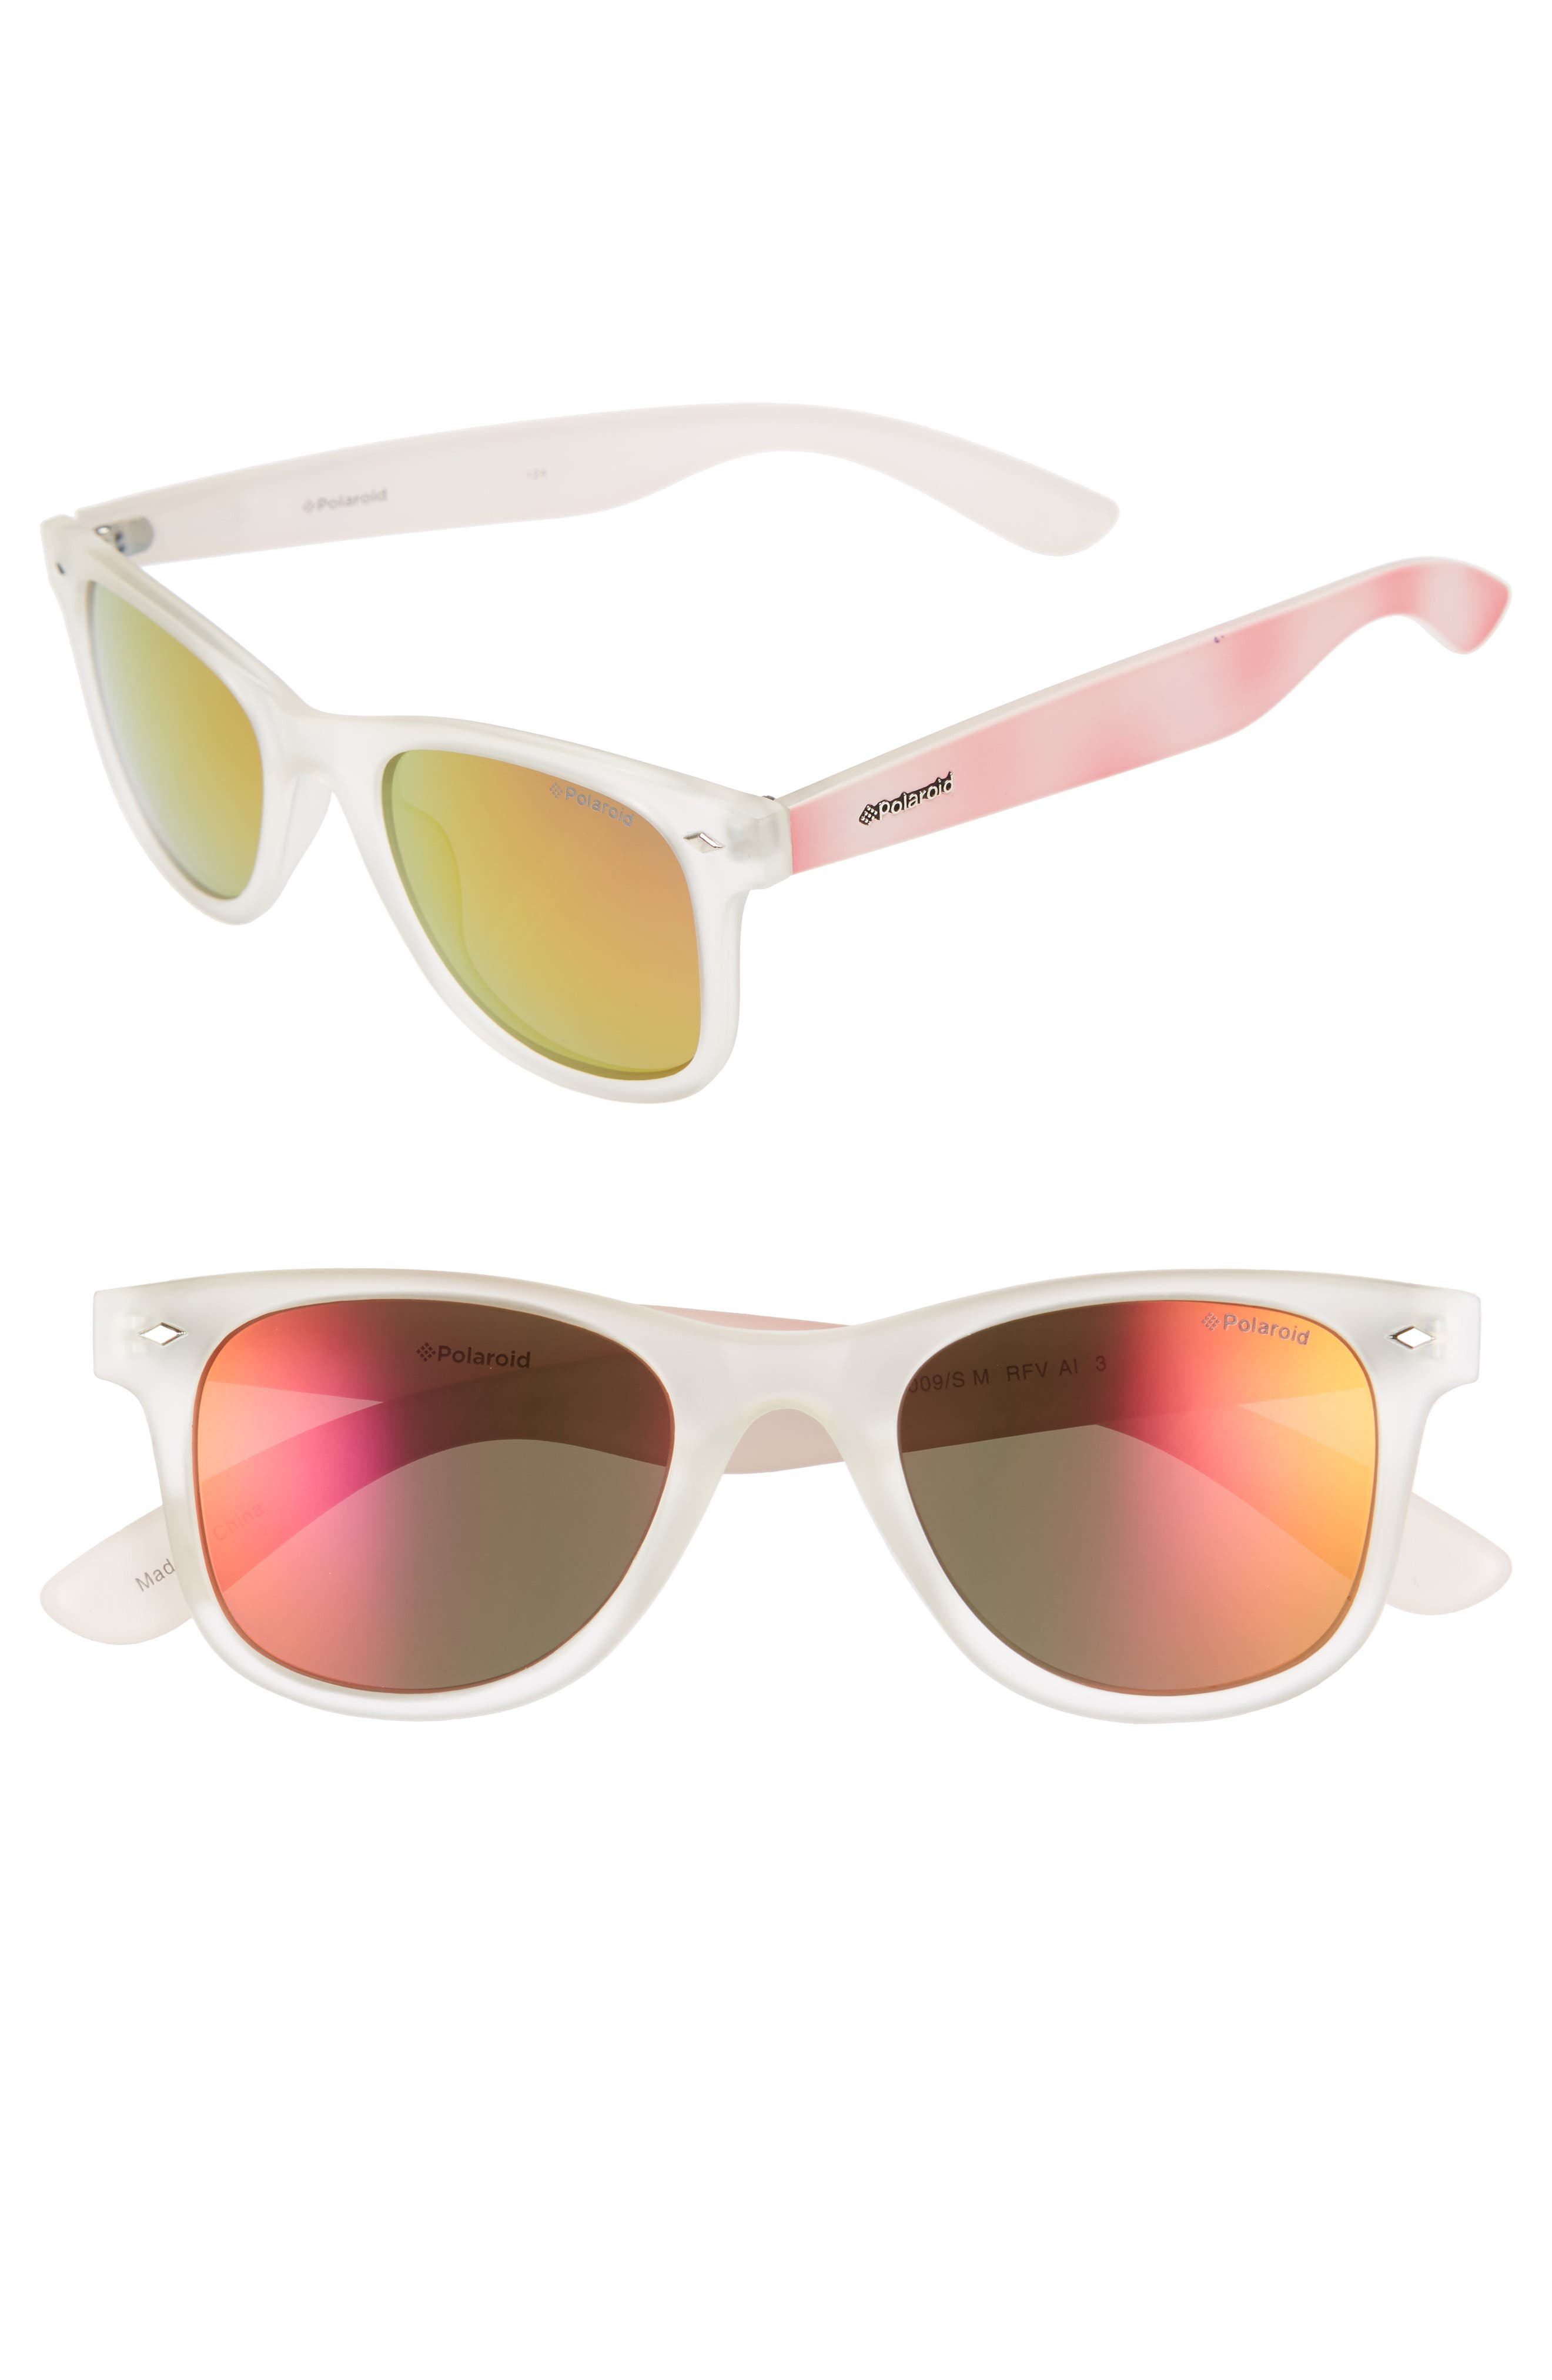 50mm Polarized Sunglasses,                             Main thumbnail 1, color,                             Bright Pink